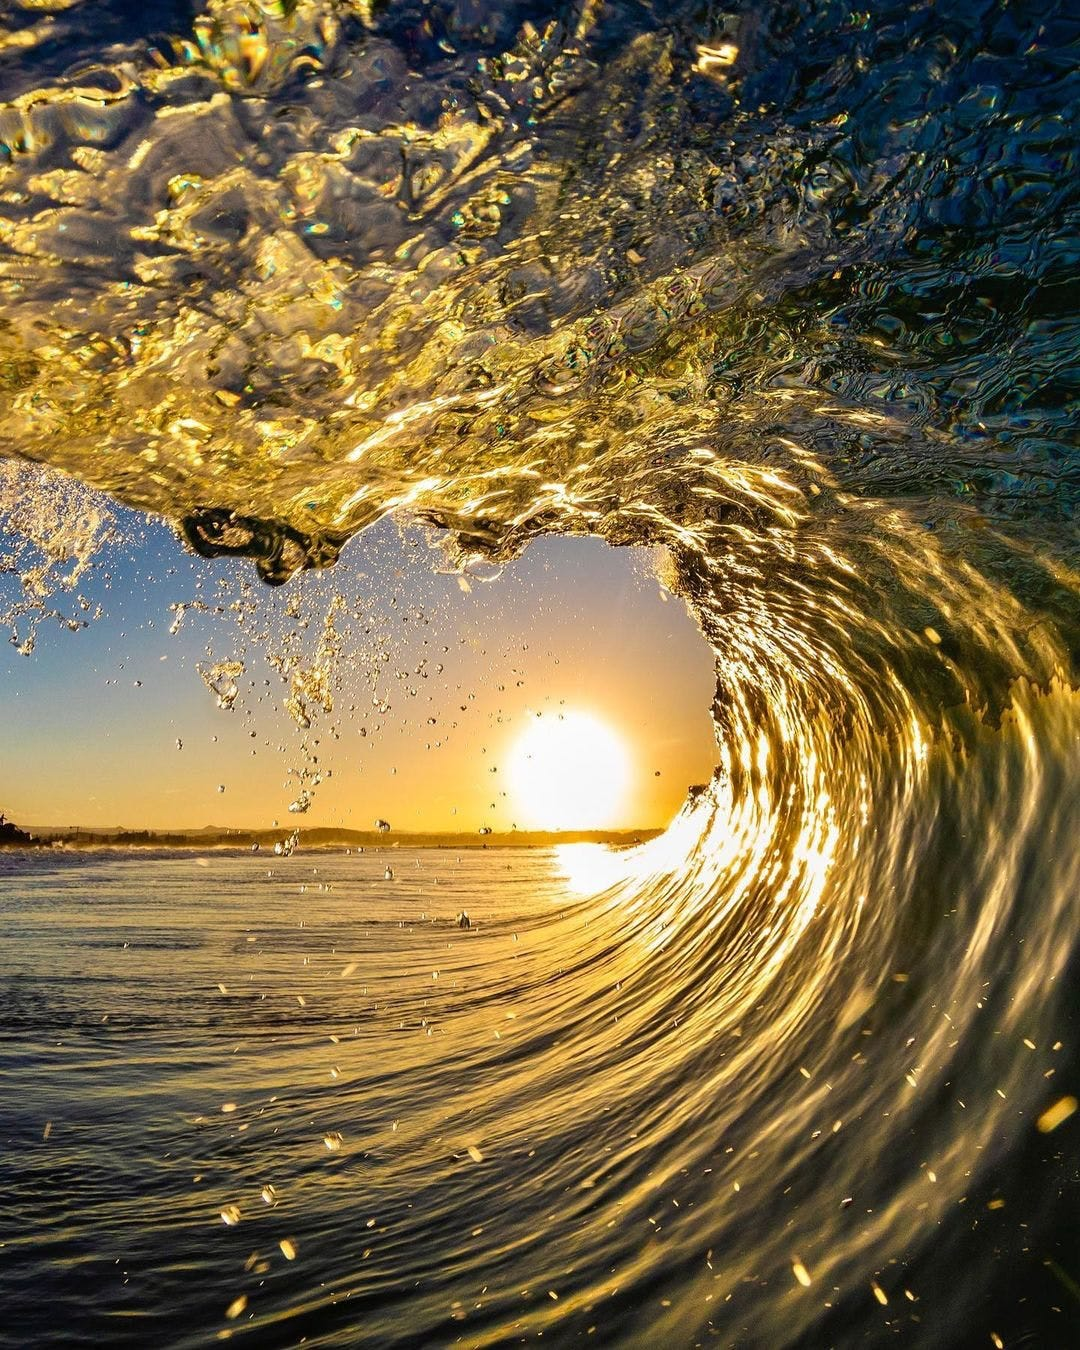 Inside a surfing wave